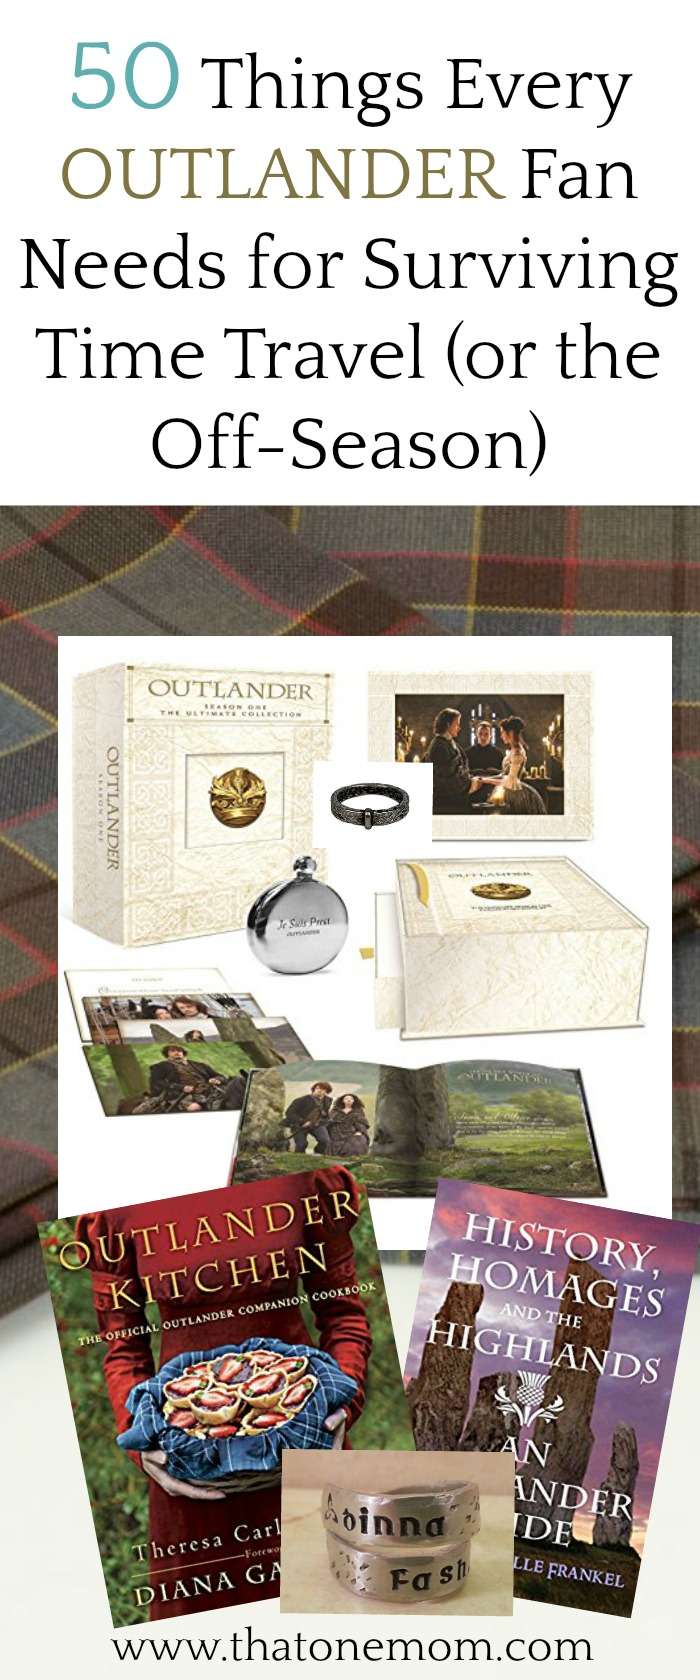 50 Things Every Outlander Fan Needs For Surviving Time Travel or the Off-Season